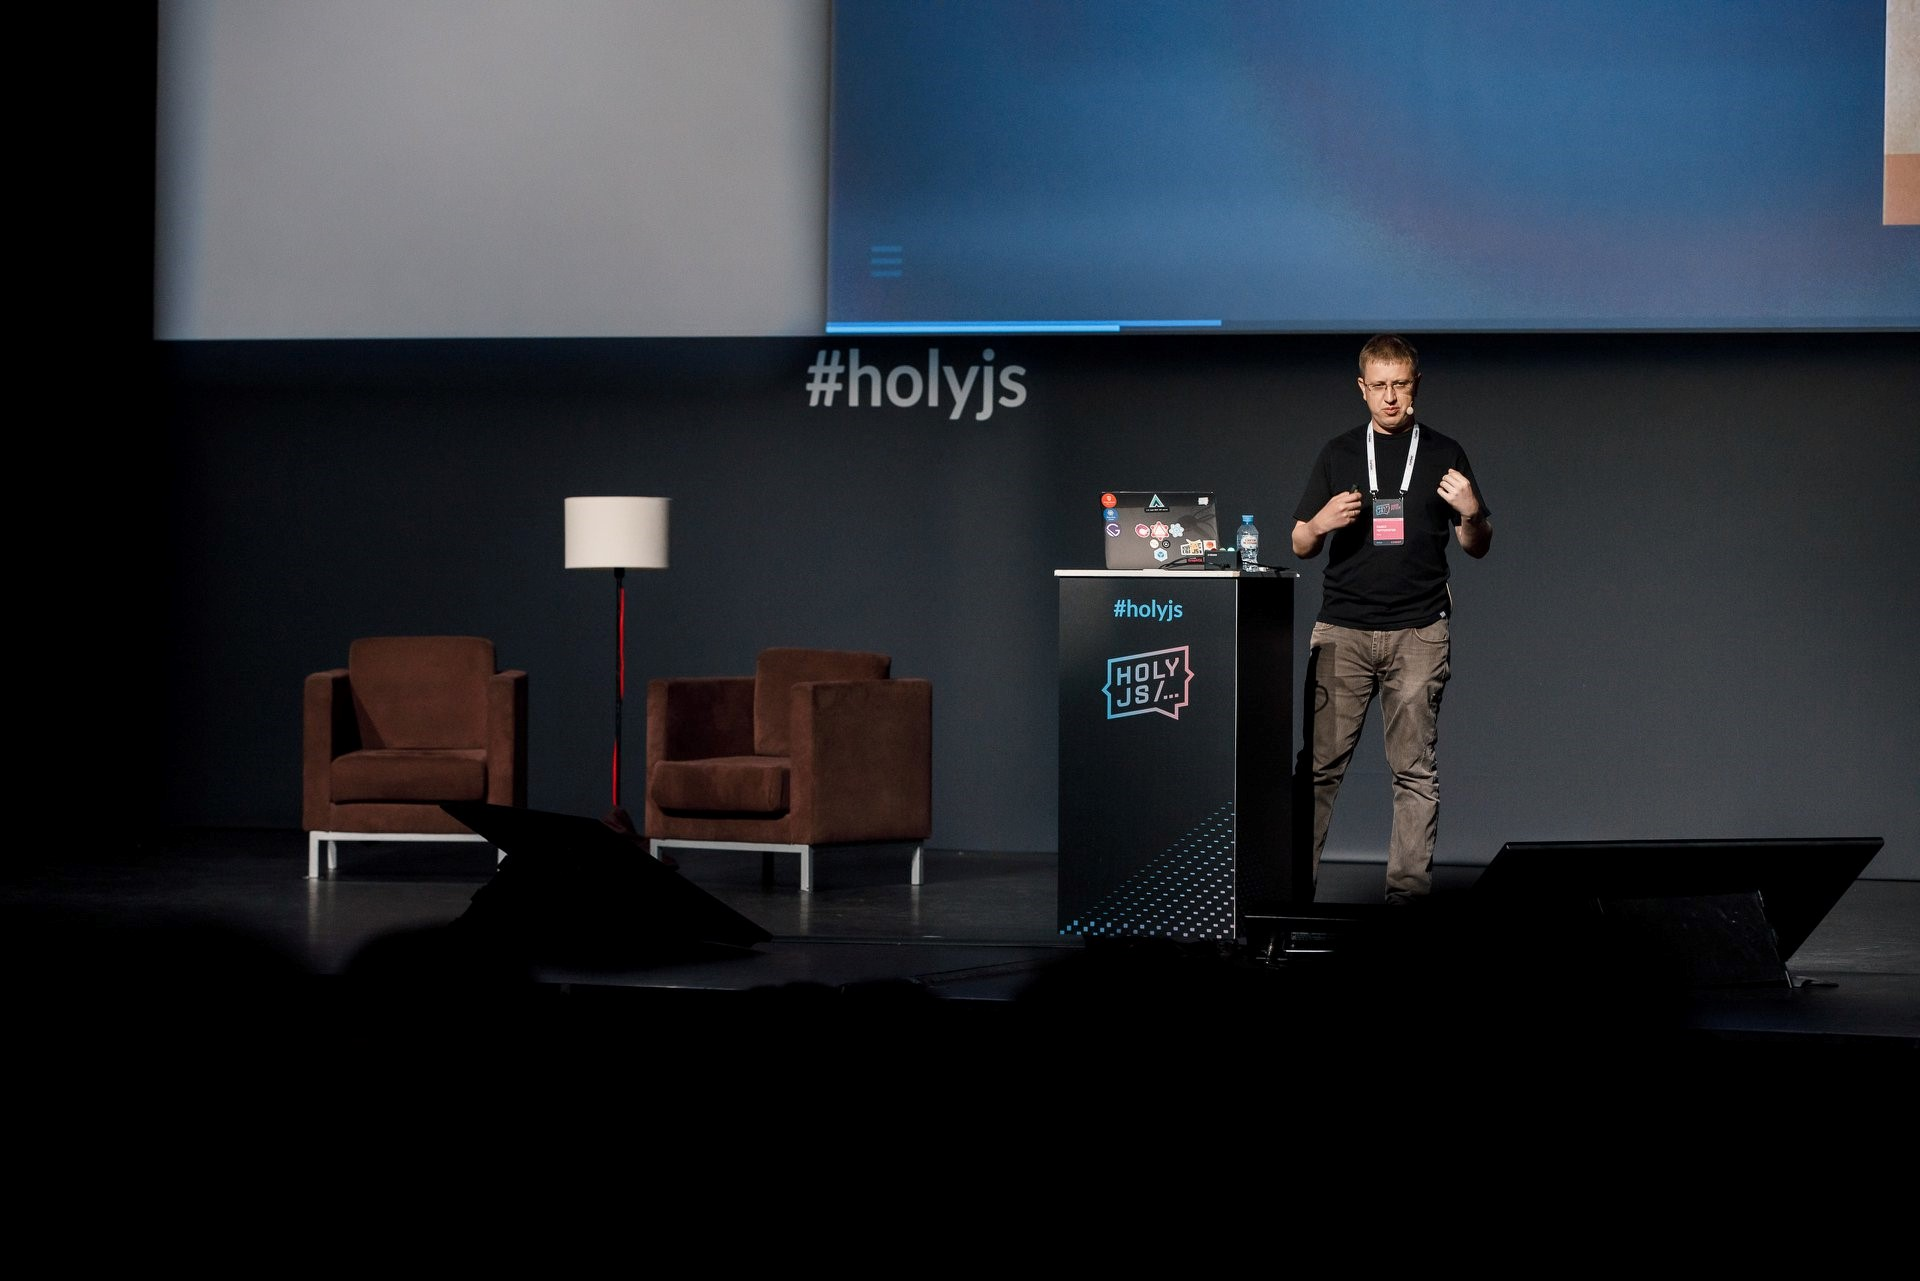 JavaScript Conferences HolyJS